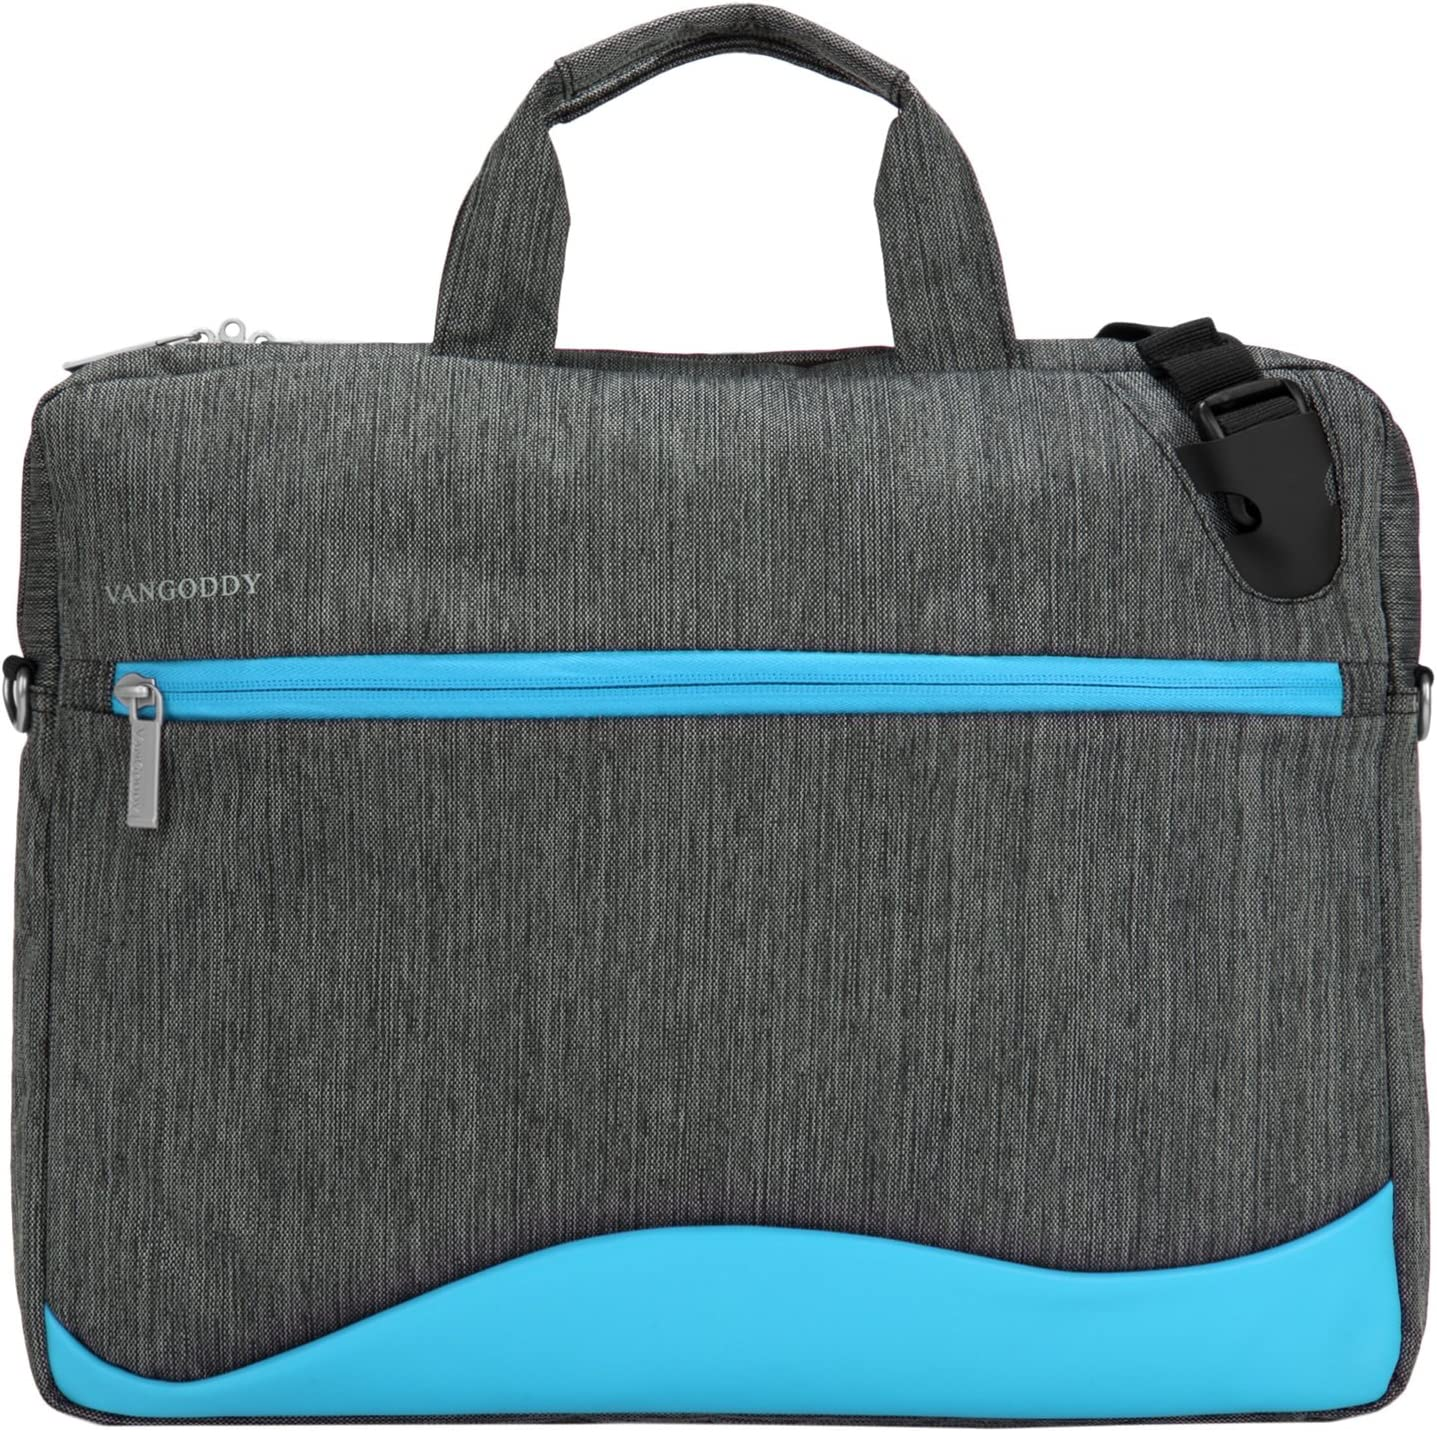 15 Laptop Carrying Case for Apple Mackbook Air 13/Pro 13, Asus Chromebook C434